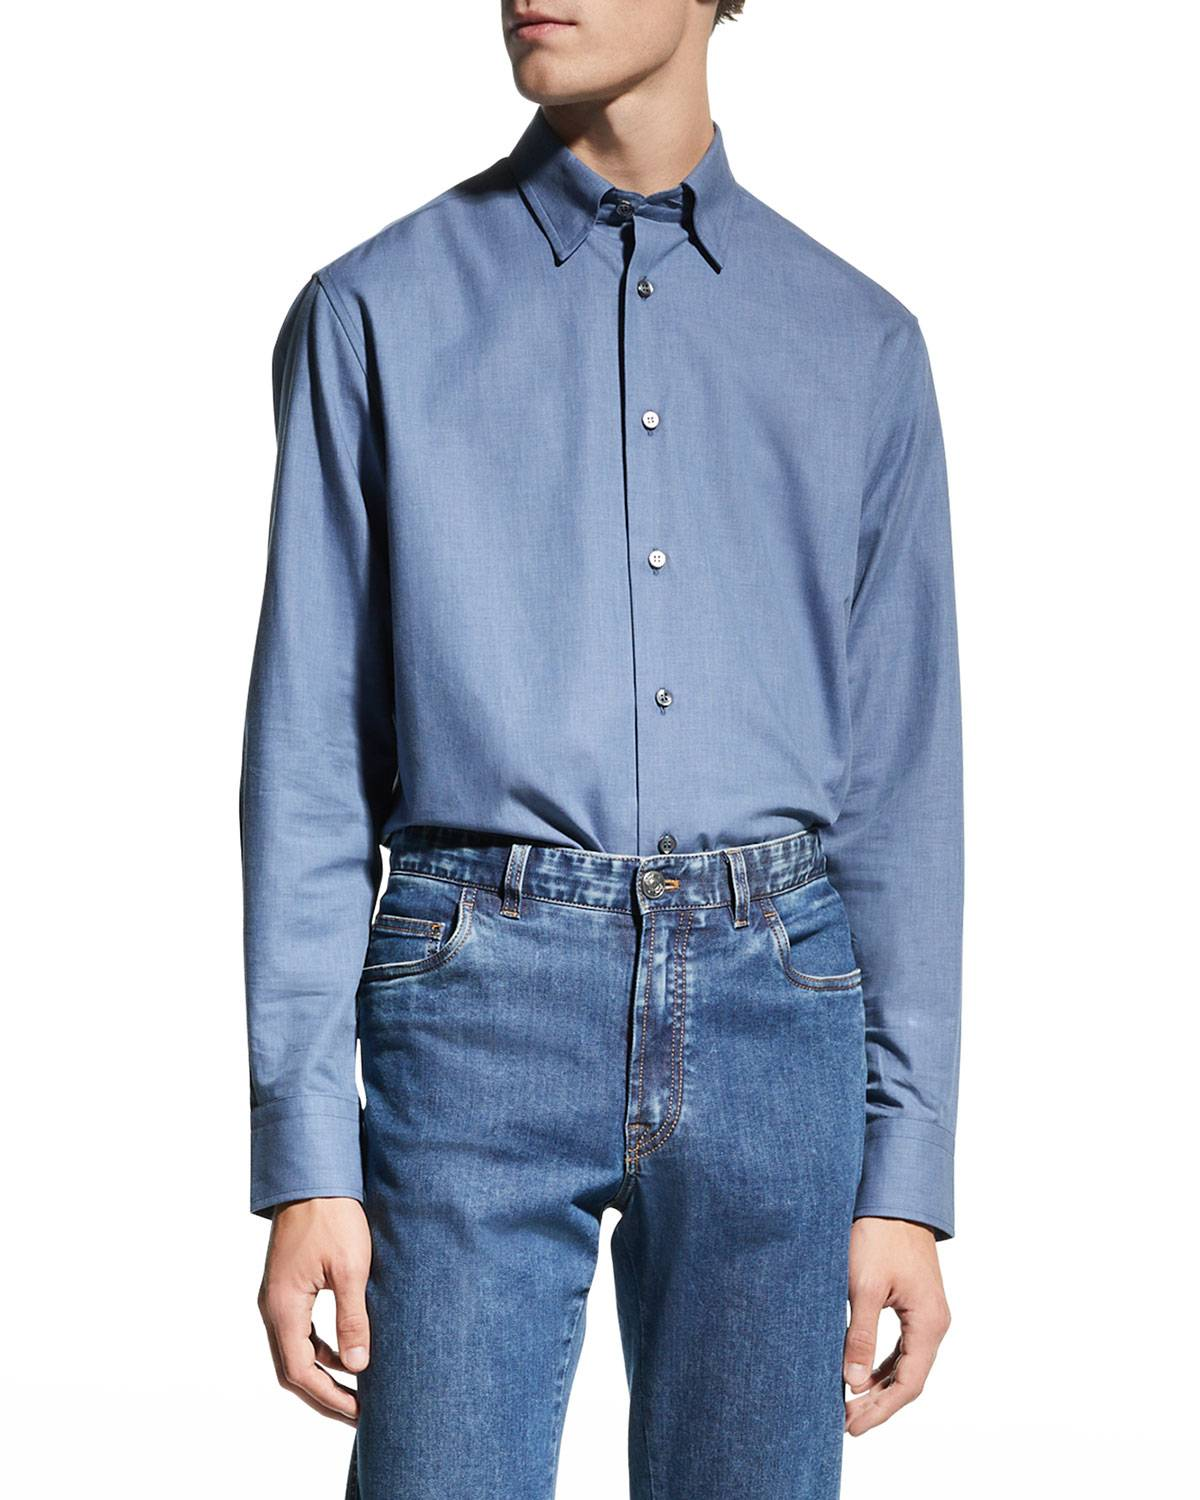 Brioni Men's Solid Chambray Sport Shirt - Size: 2X-Large